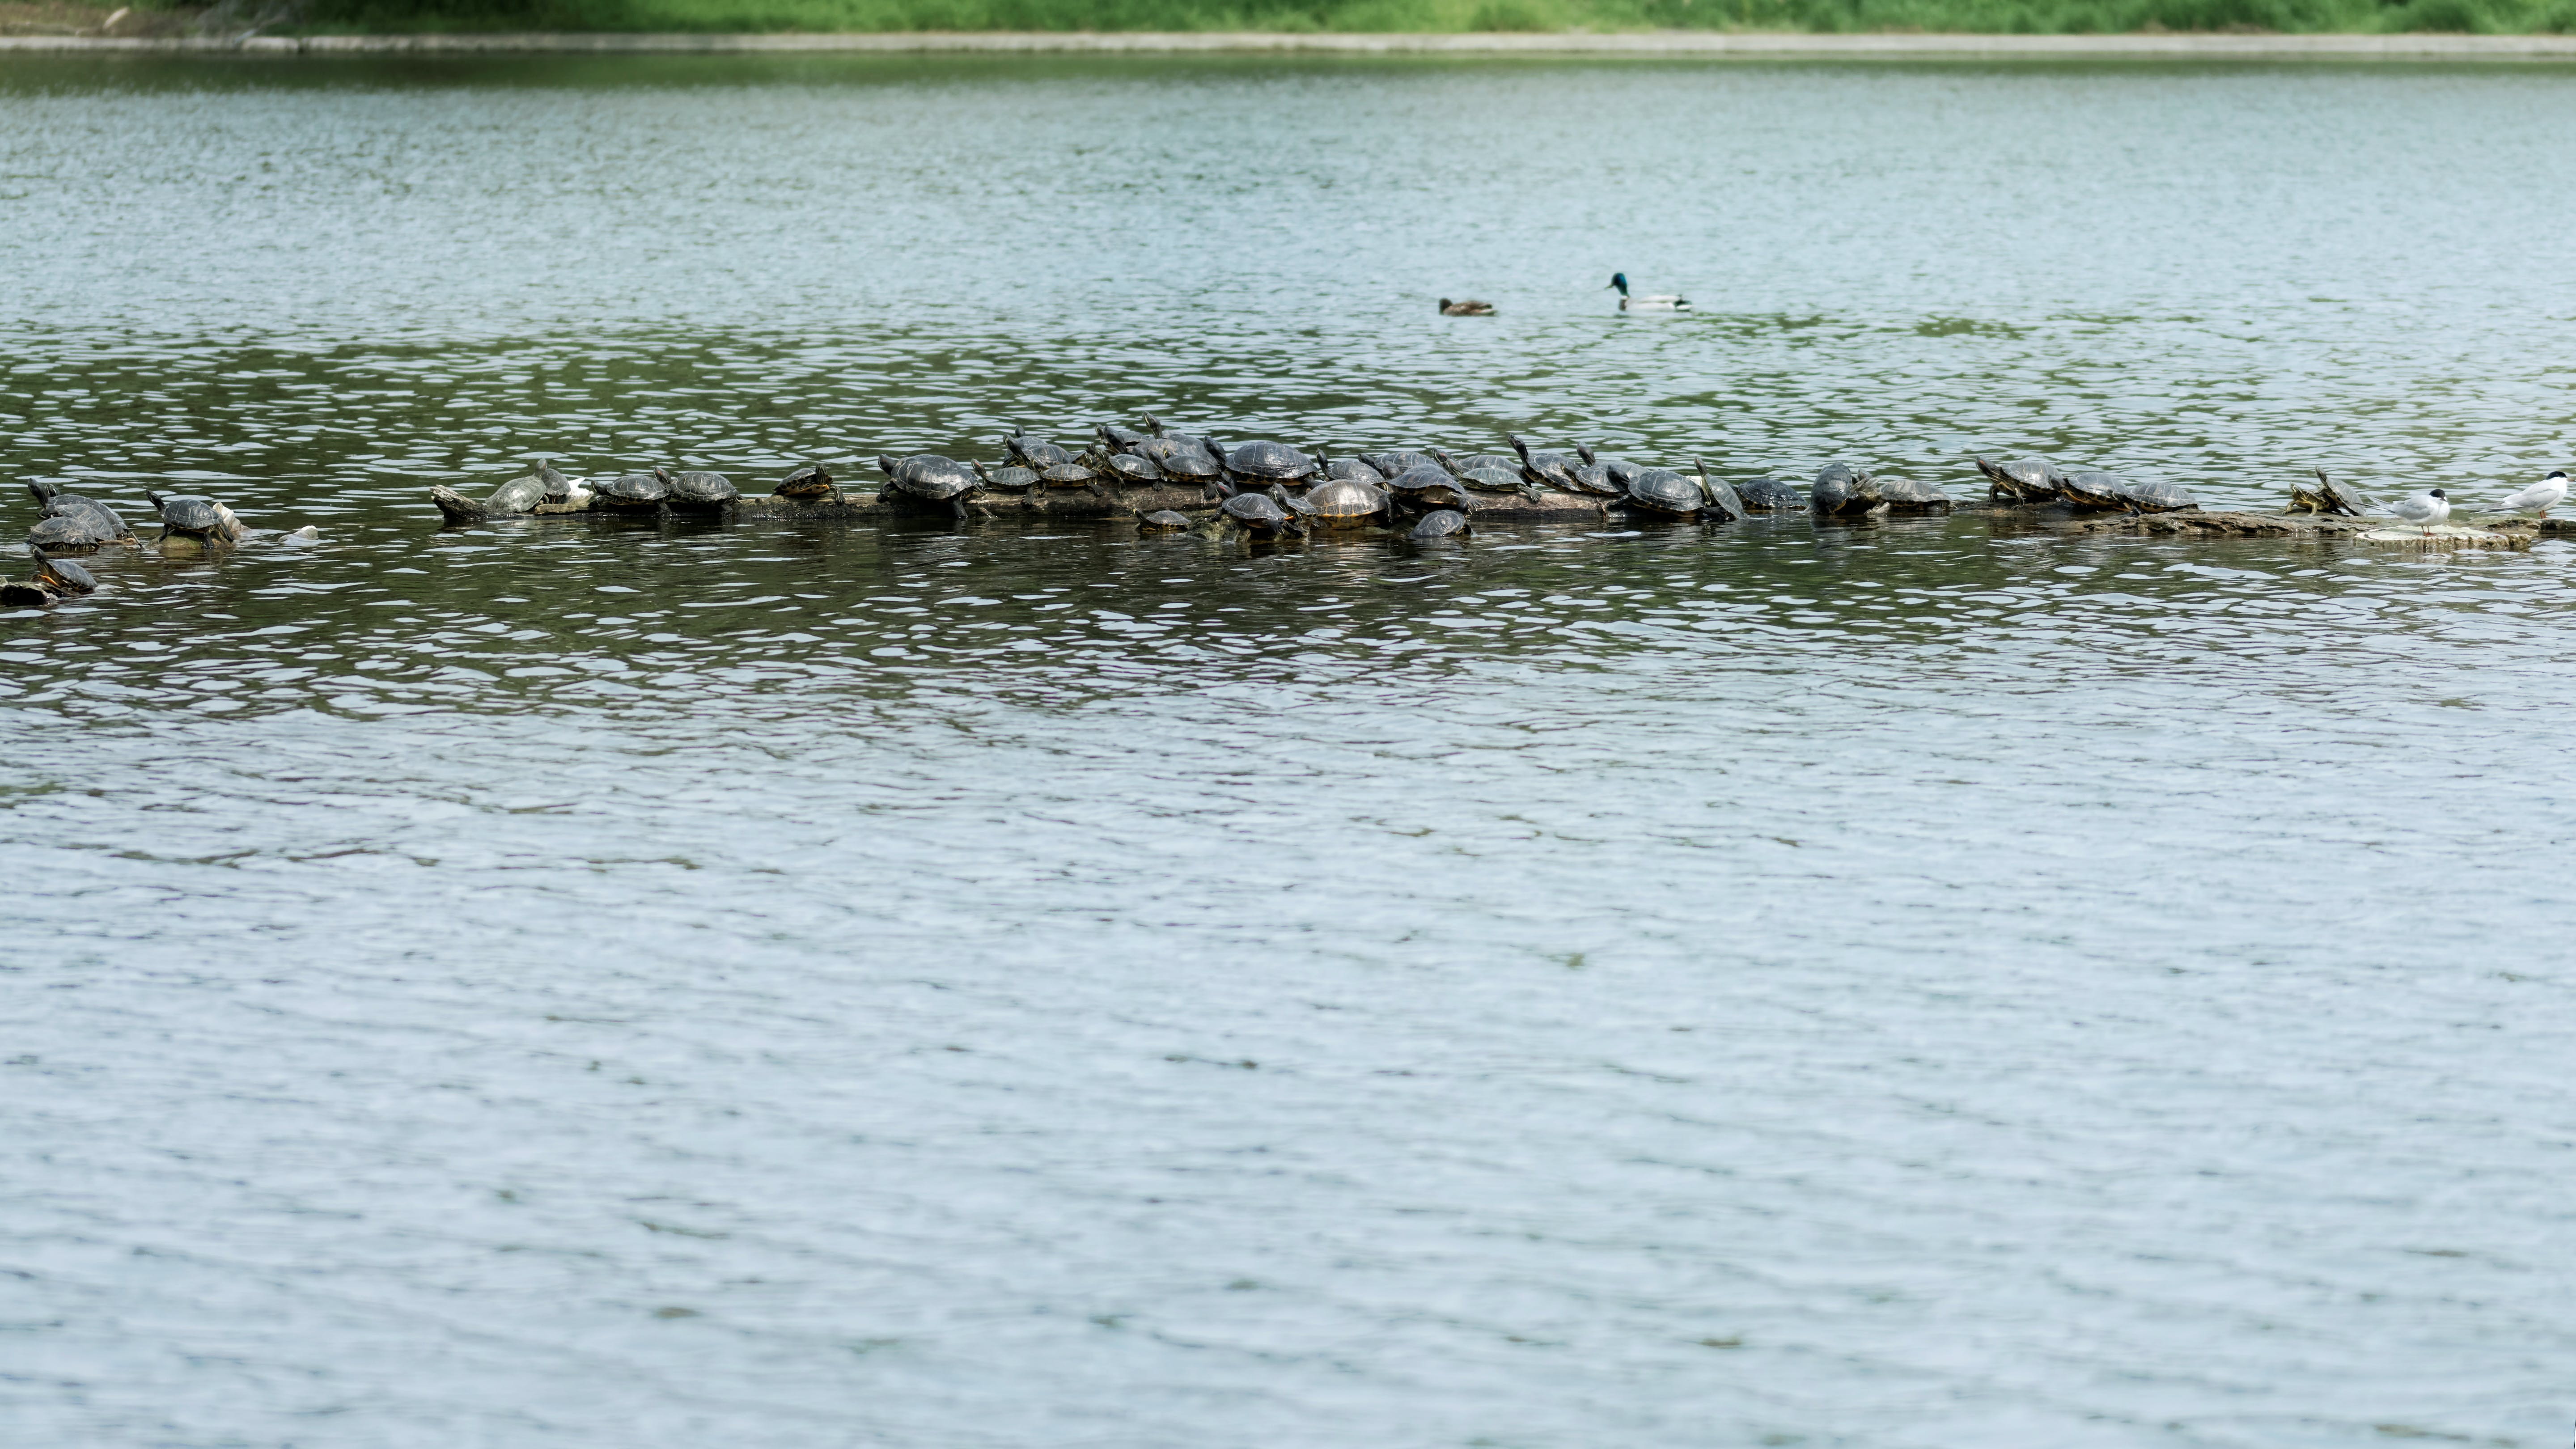 Free stock photo of a lot of turtles on lake, birds, nature, sunny